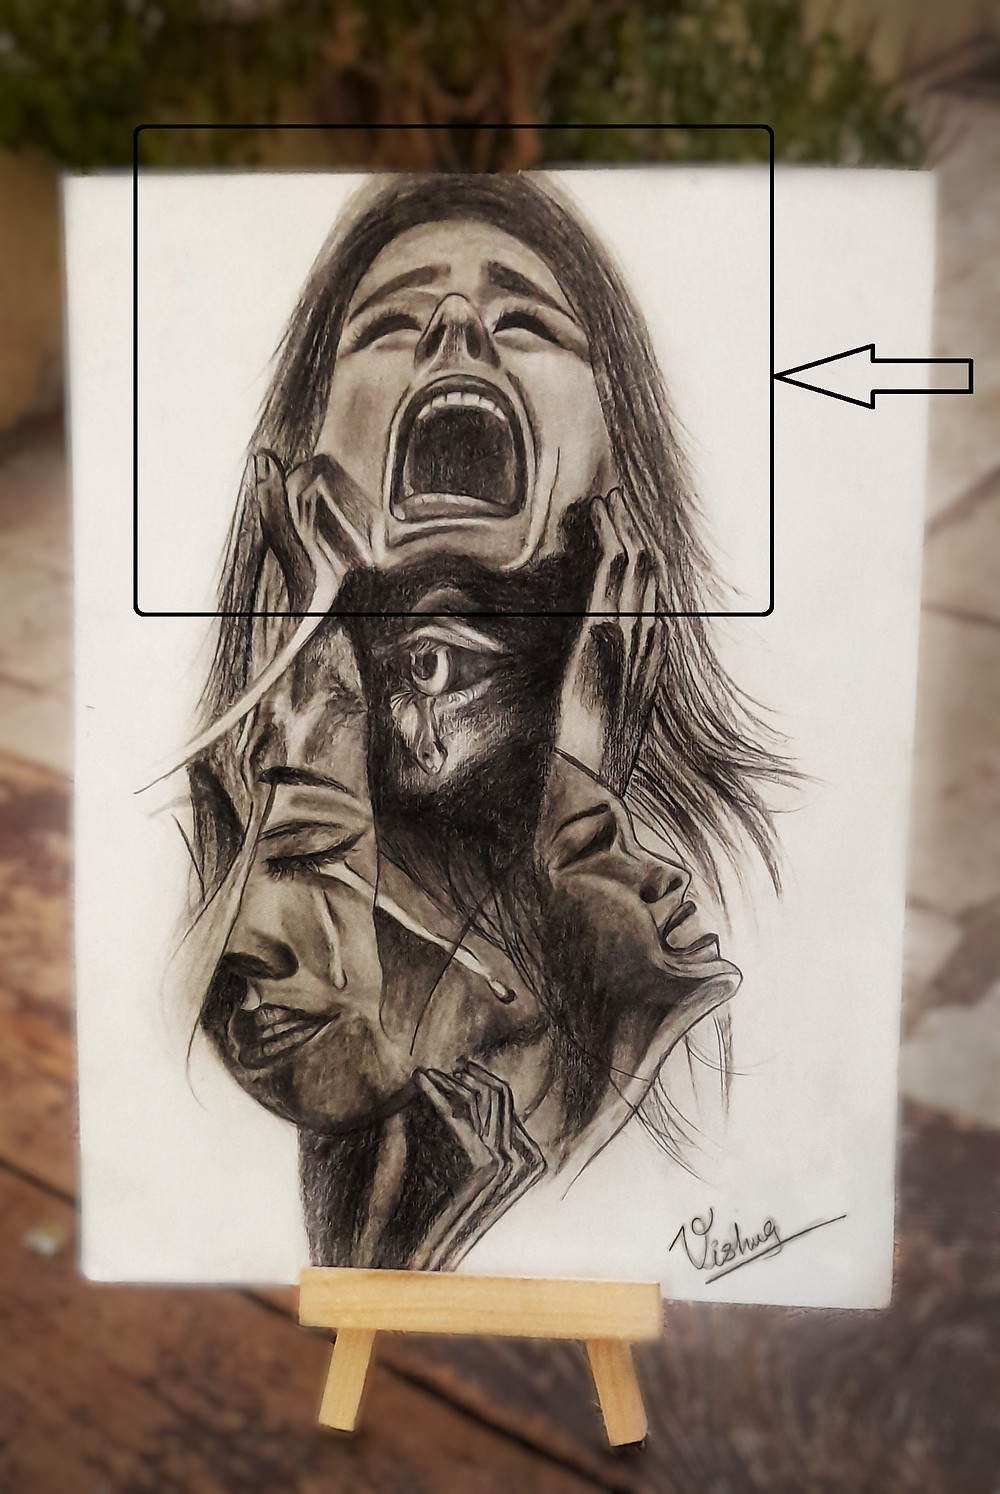 Sketch describing the pain every women is facing , the emotion which stays inside because responsibilities and at the is comes out in different form